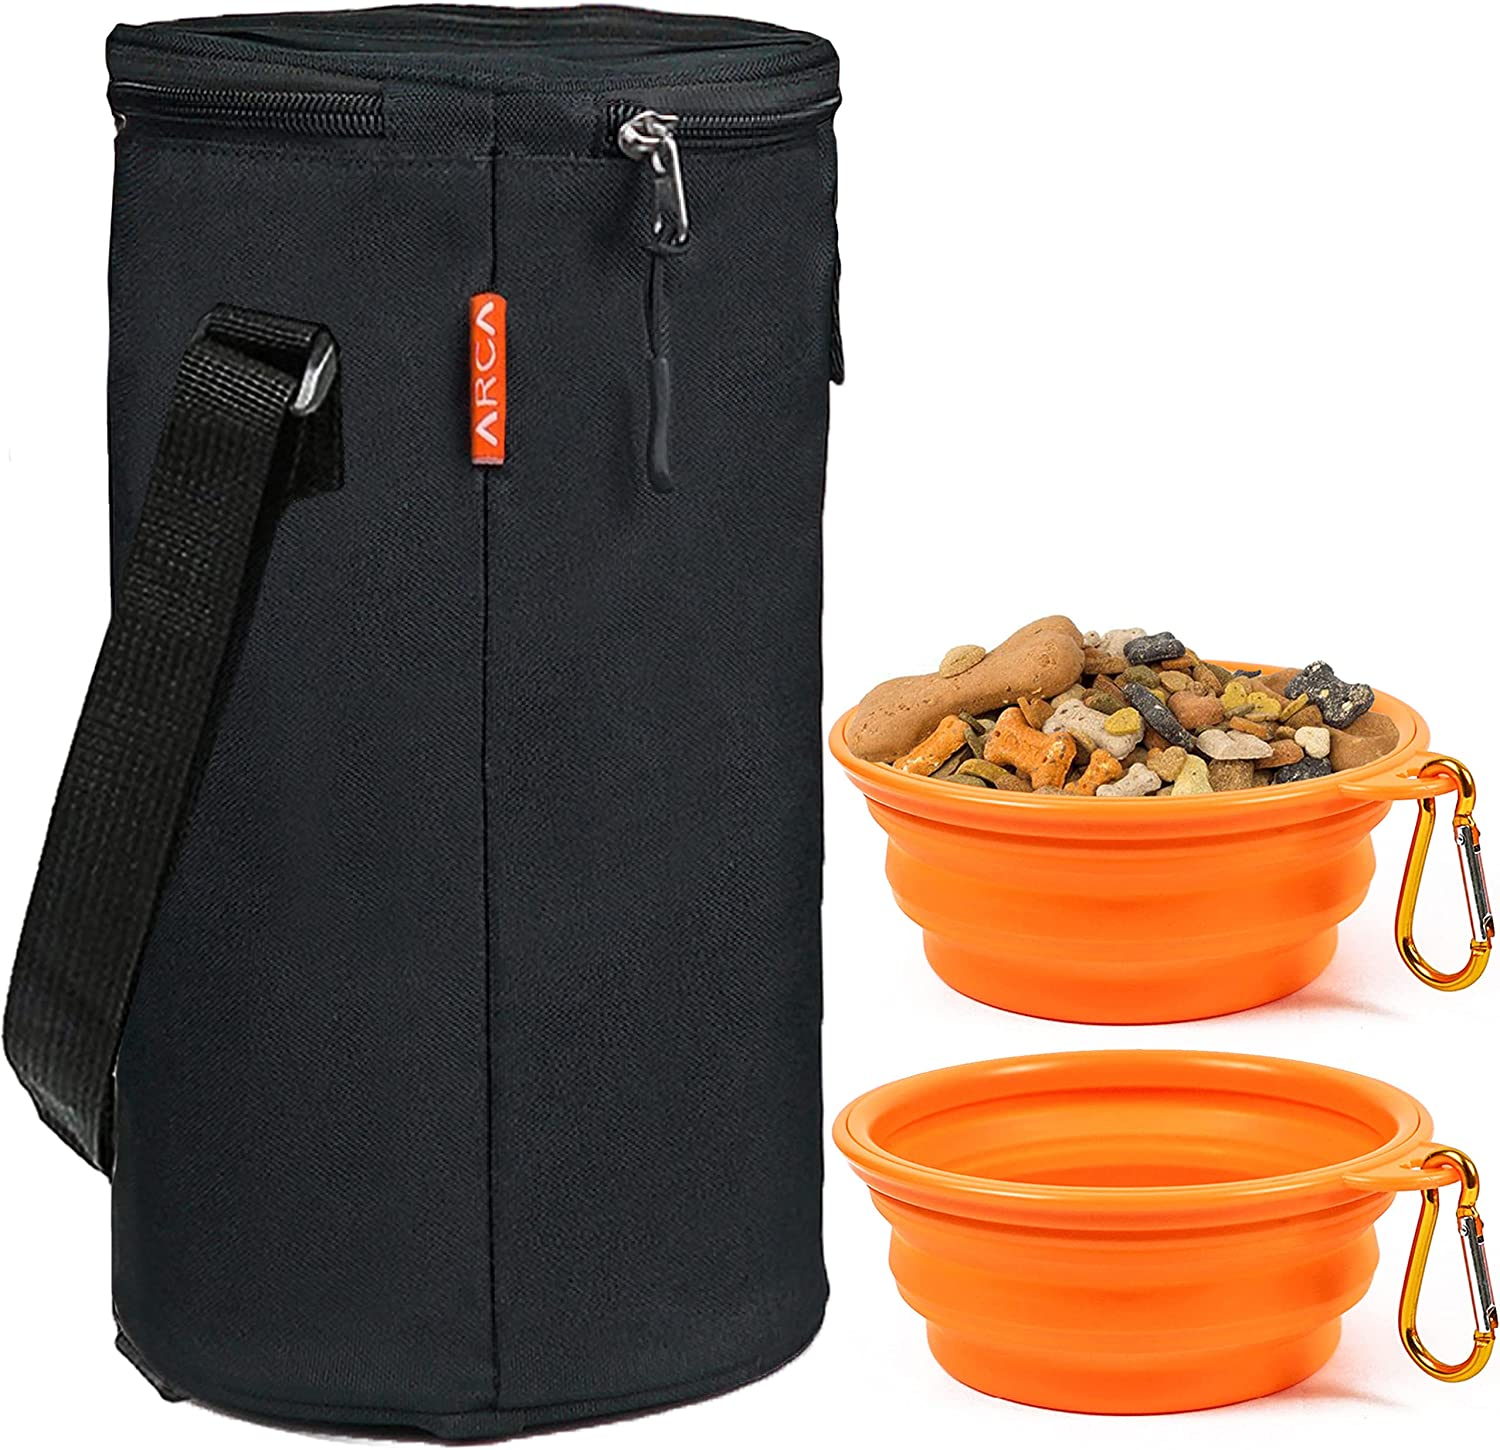 ARCA PET Portable Travel Dog Bowl Kit for Food and Water - 15 Cup Dog & Cat Food Storage Bag with 2 Collapsible Bowls (Black)